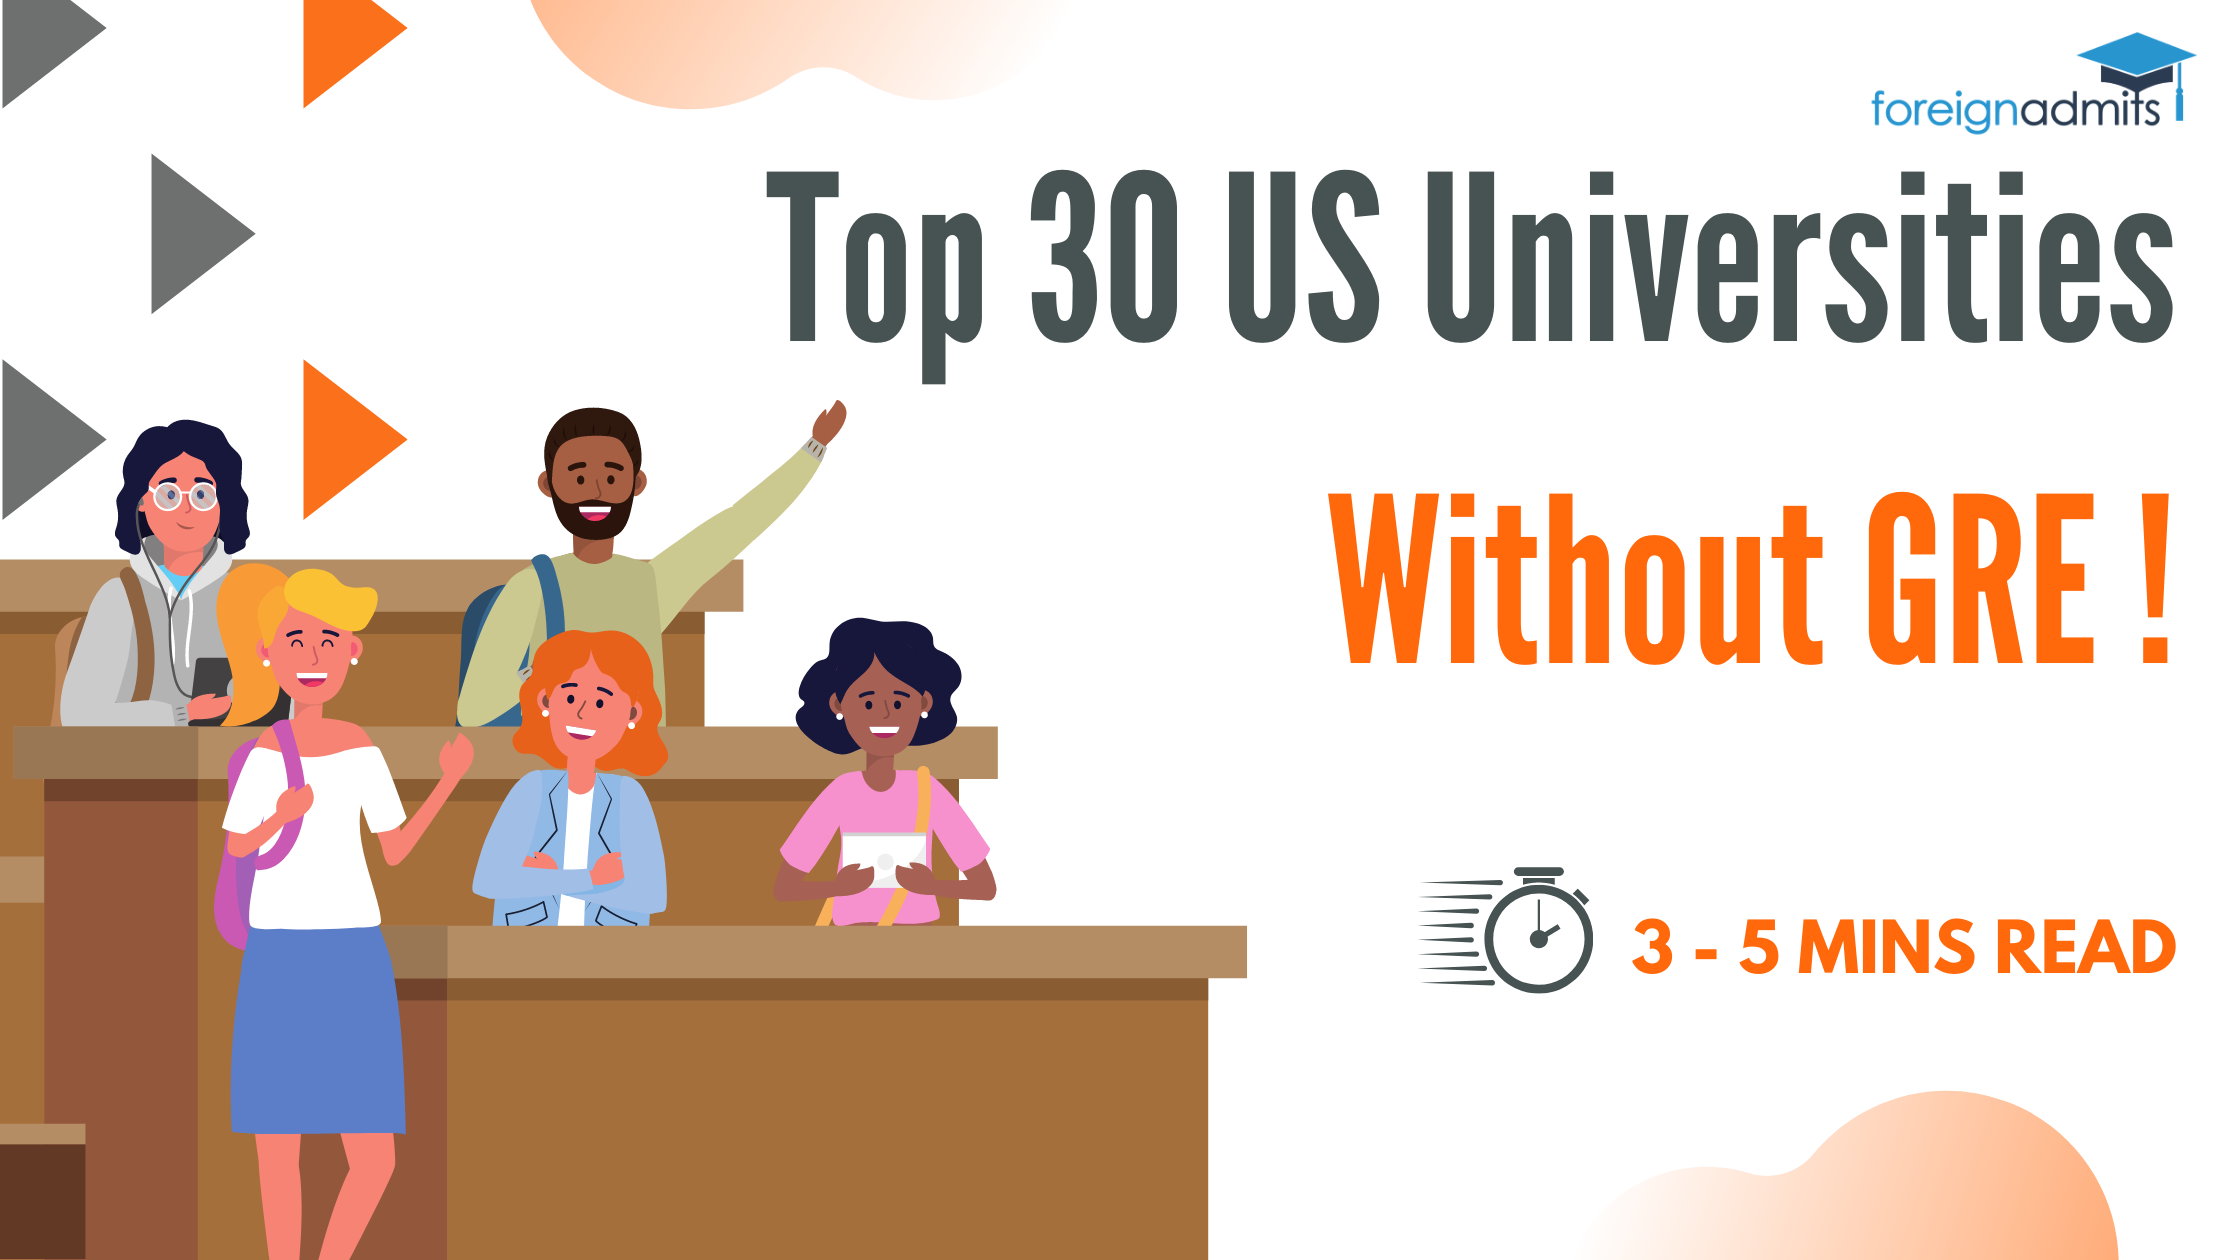 Top 30 US Universities Without GRE